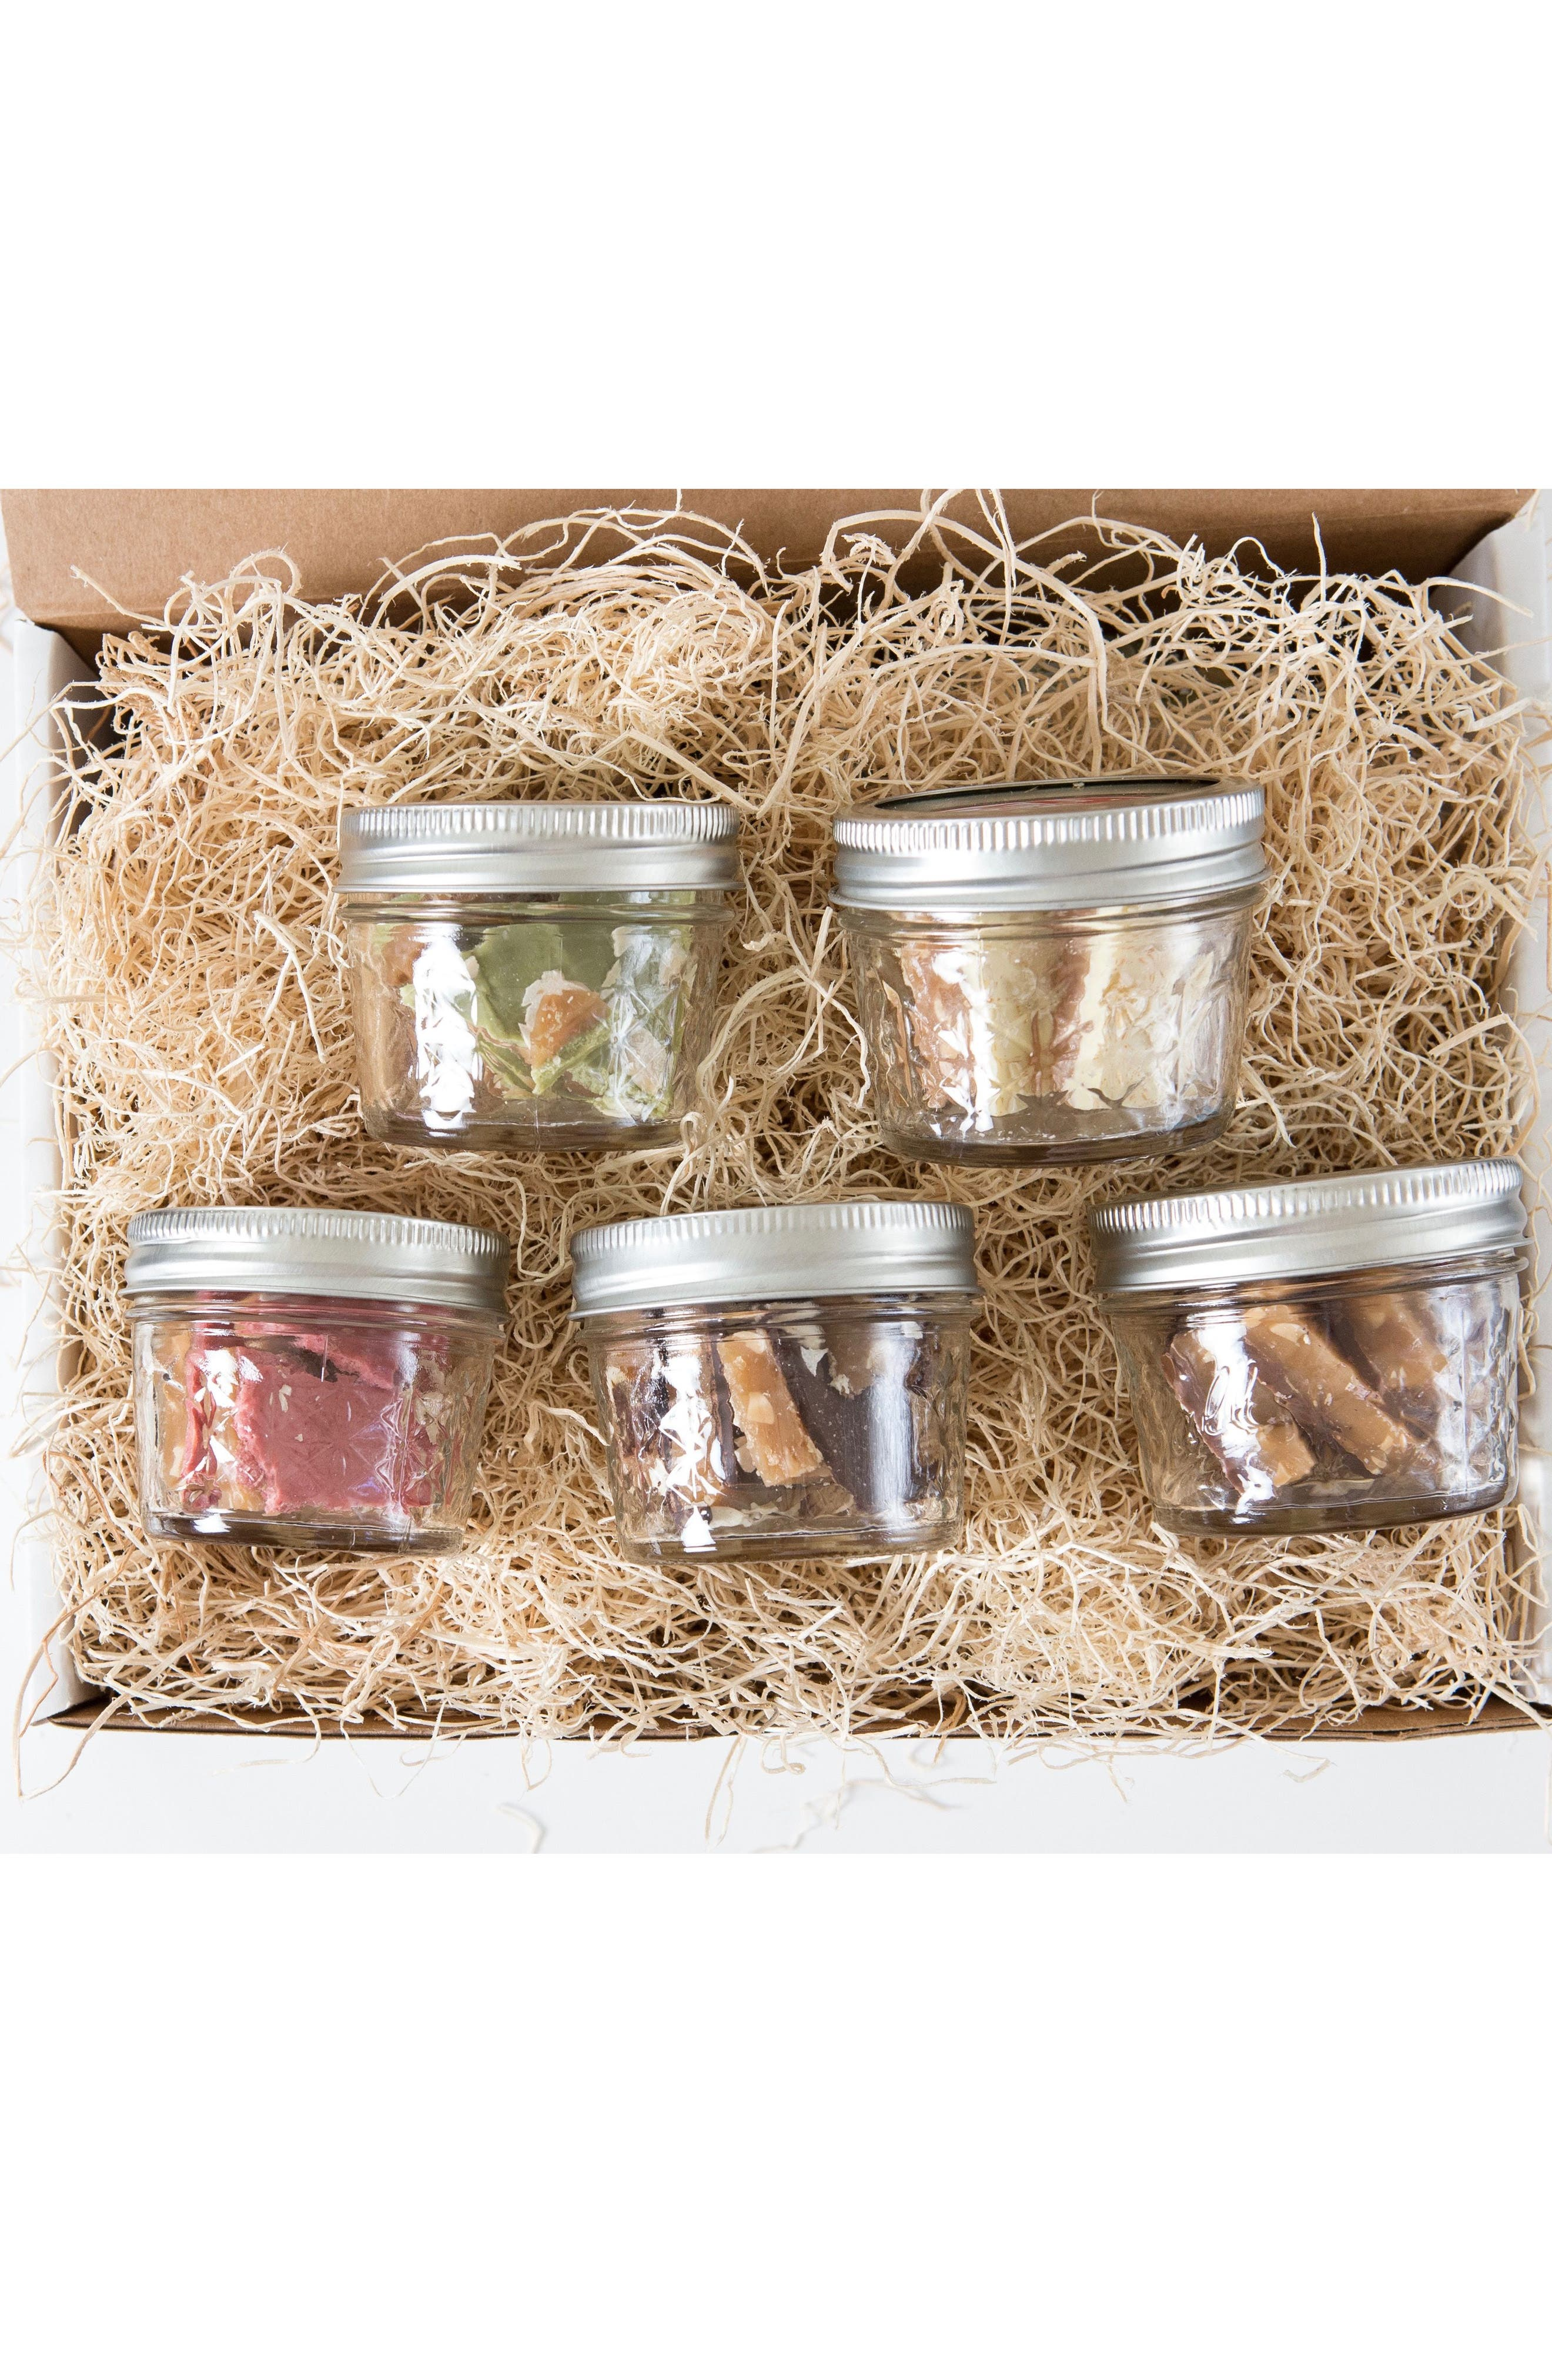 Take a Flight to Toffee Land 5-Pack Toffee Gift Set,                             Alternate thumbnail 6, color,                             Natural Multi